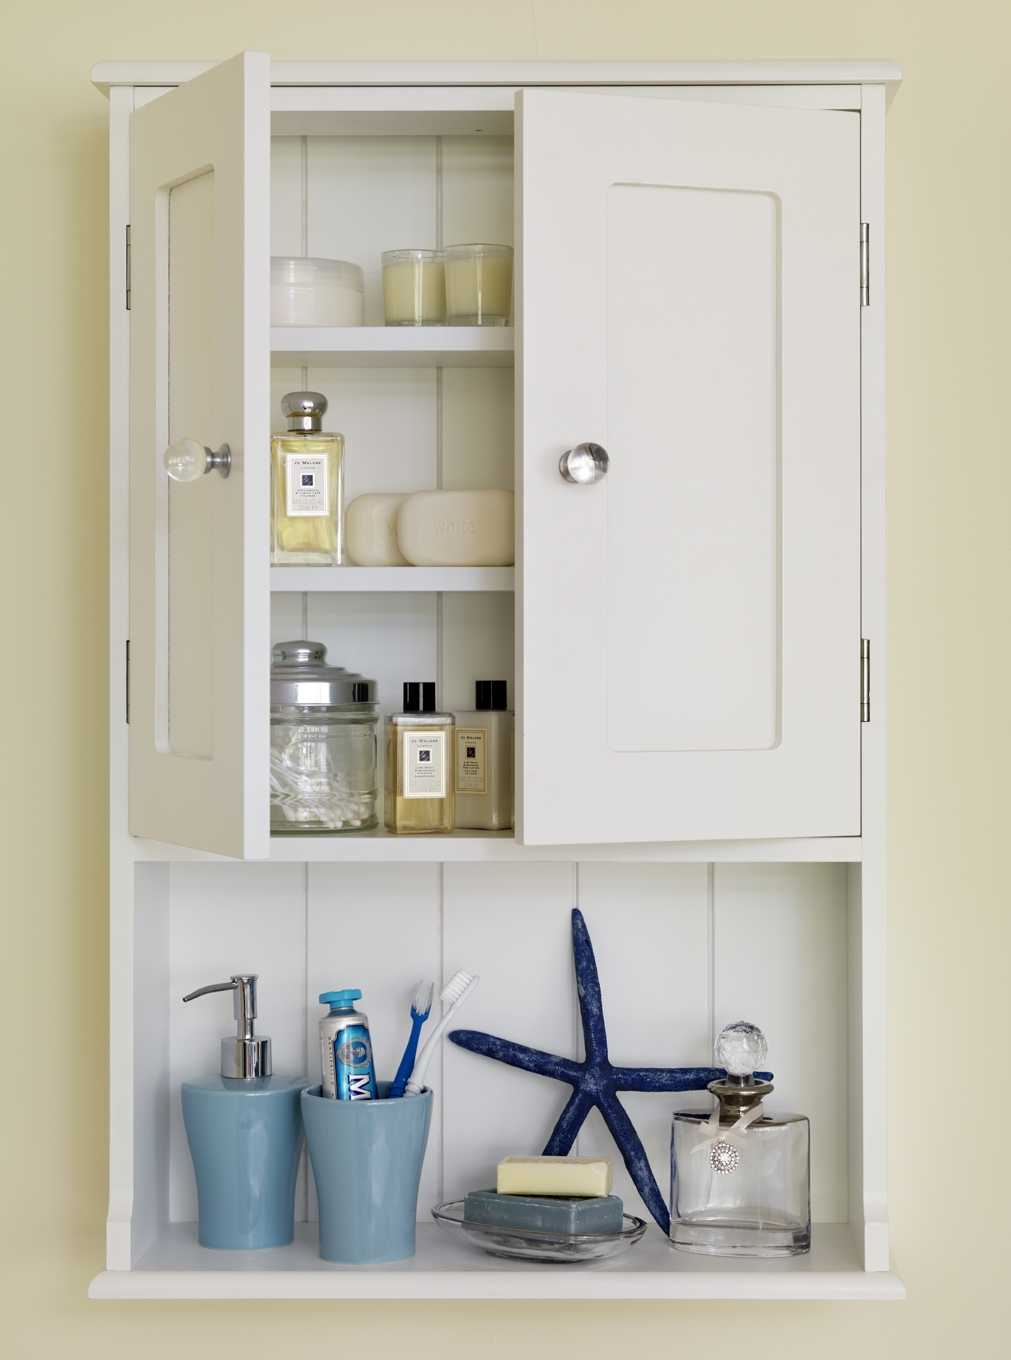 Permalink to Bathroom Shelving Cabinets